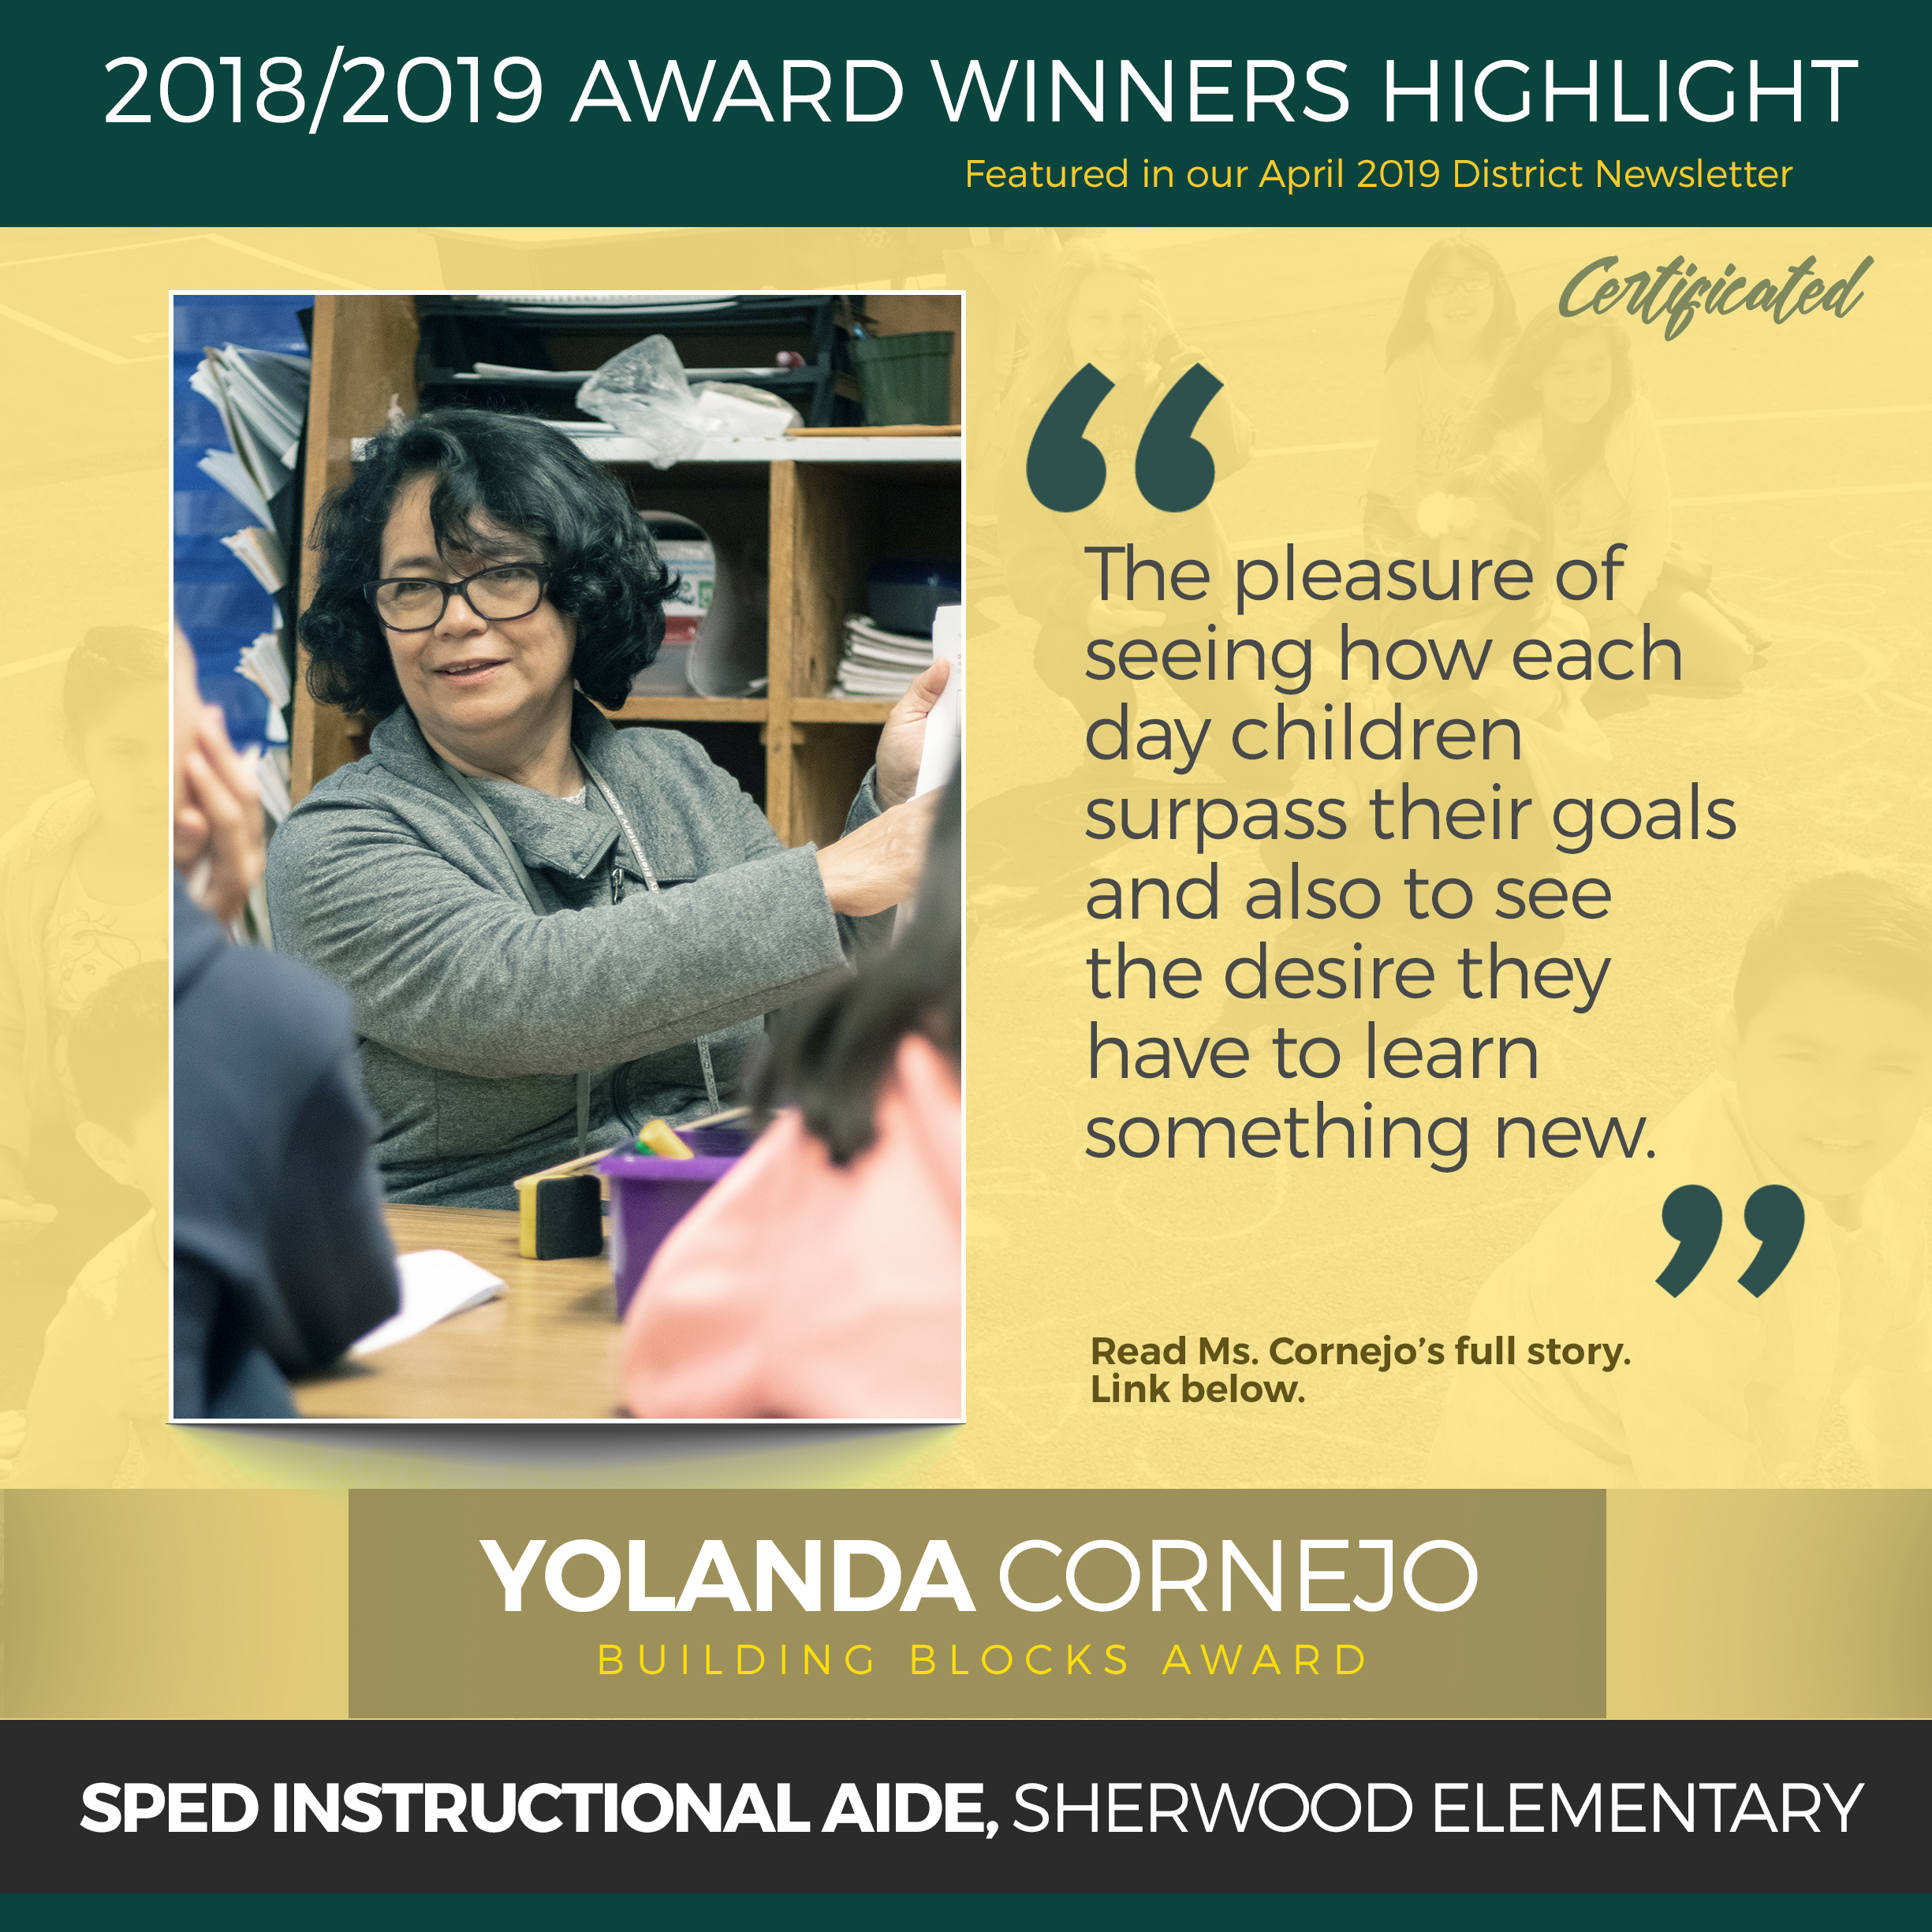 Yolanda_GI_GOLD_Award Winner Hightlight_Social Ad.jpg